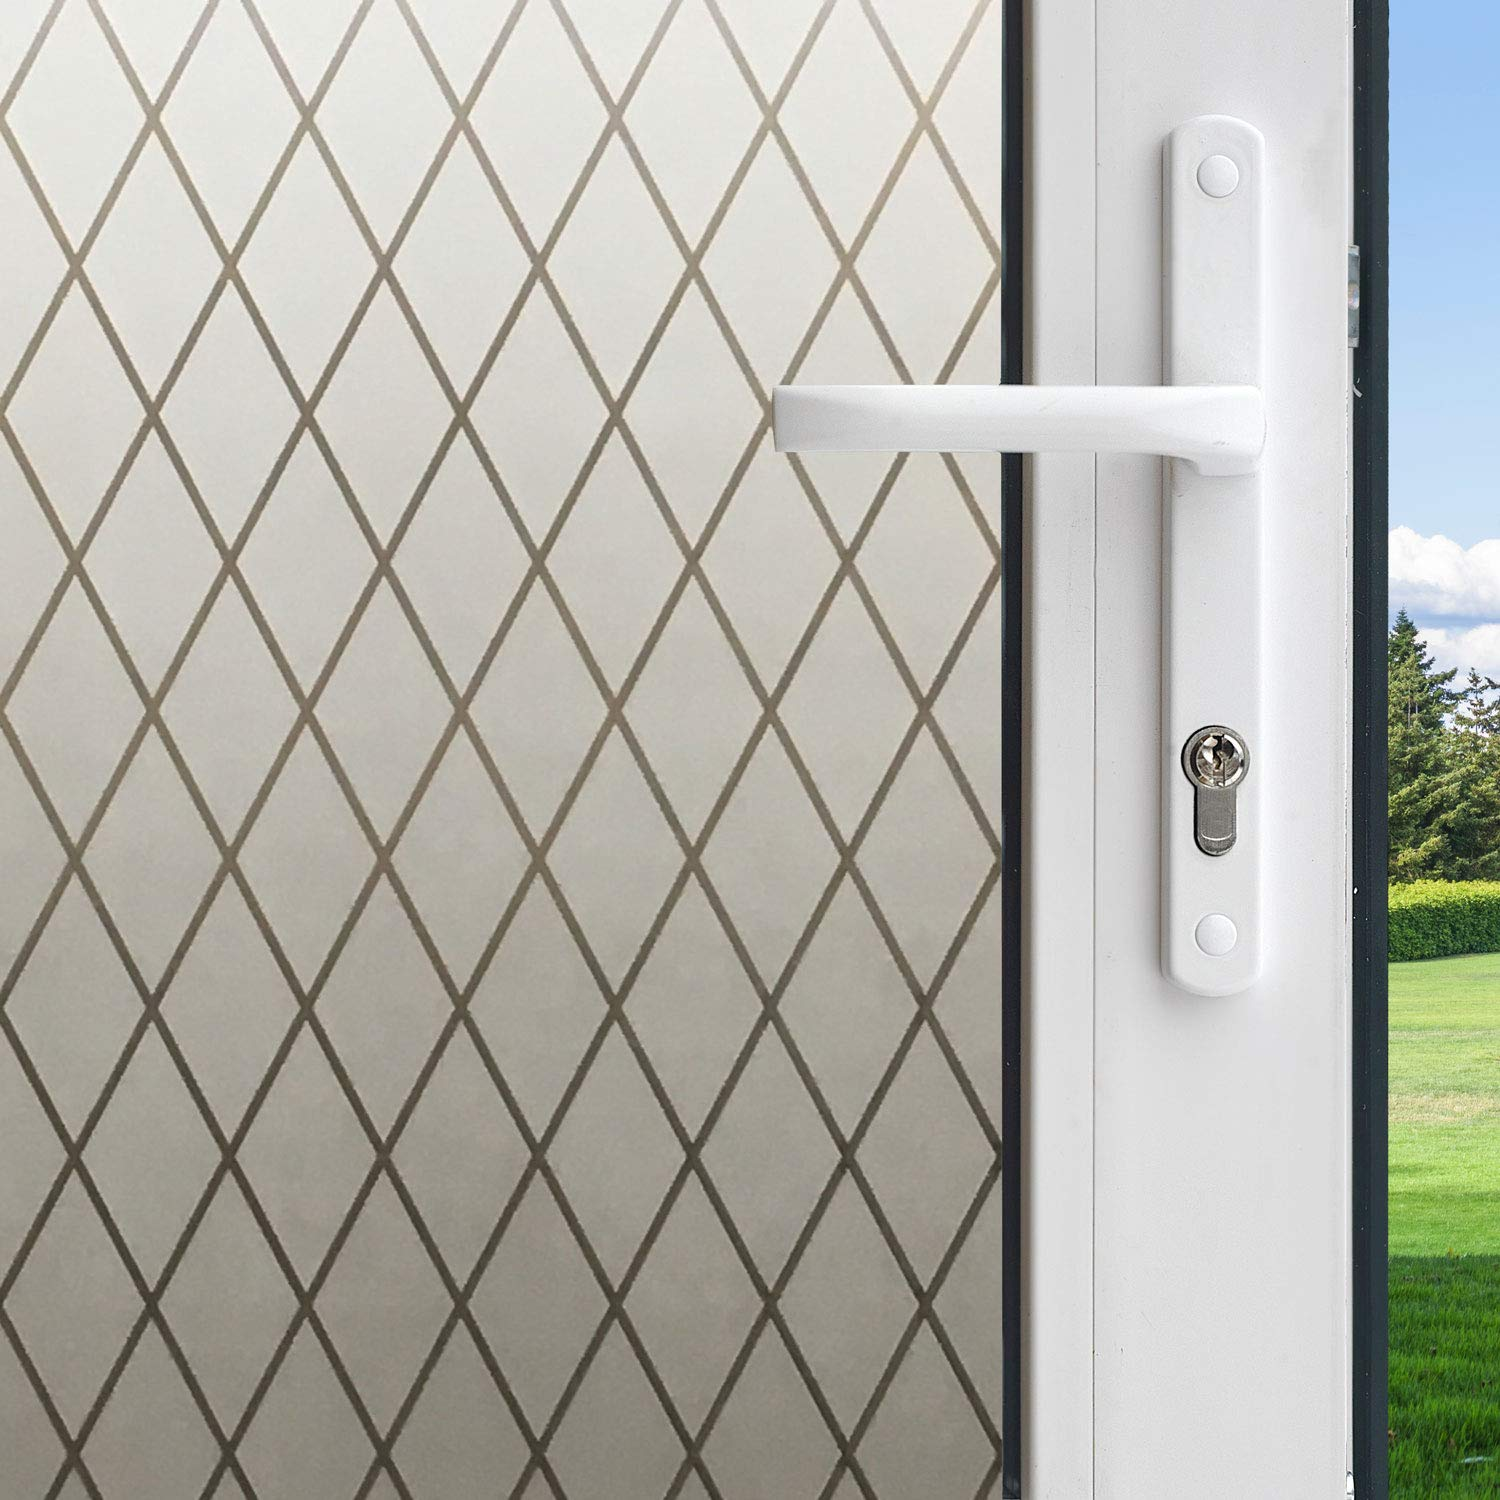 Gila 50188238 Frosted Lattice Decorative Privacy Control Static Cling 36 x 78-INCH (3 6.5 ft.) Window Film, 36in x 78in by Gila